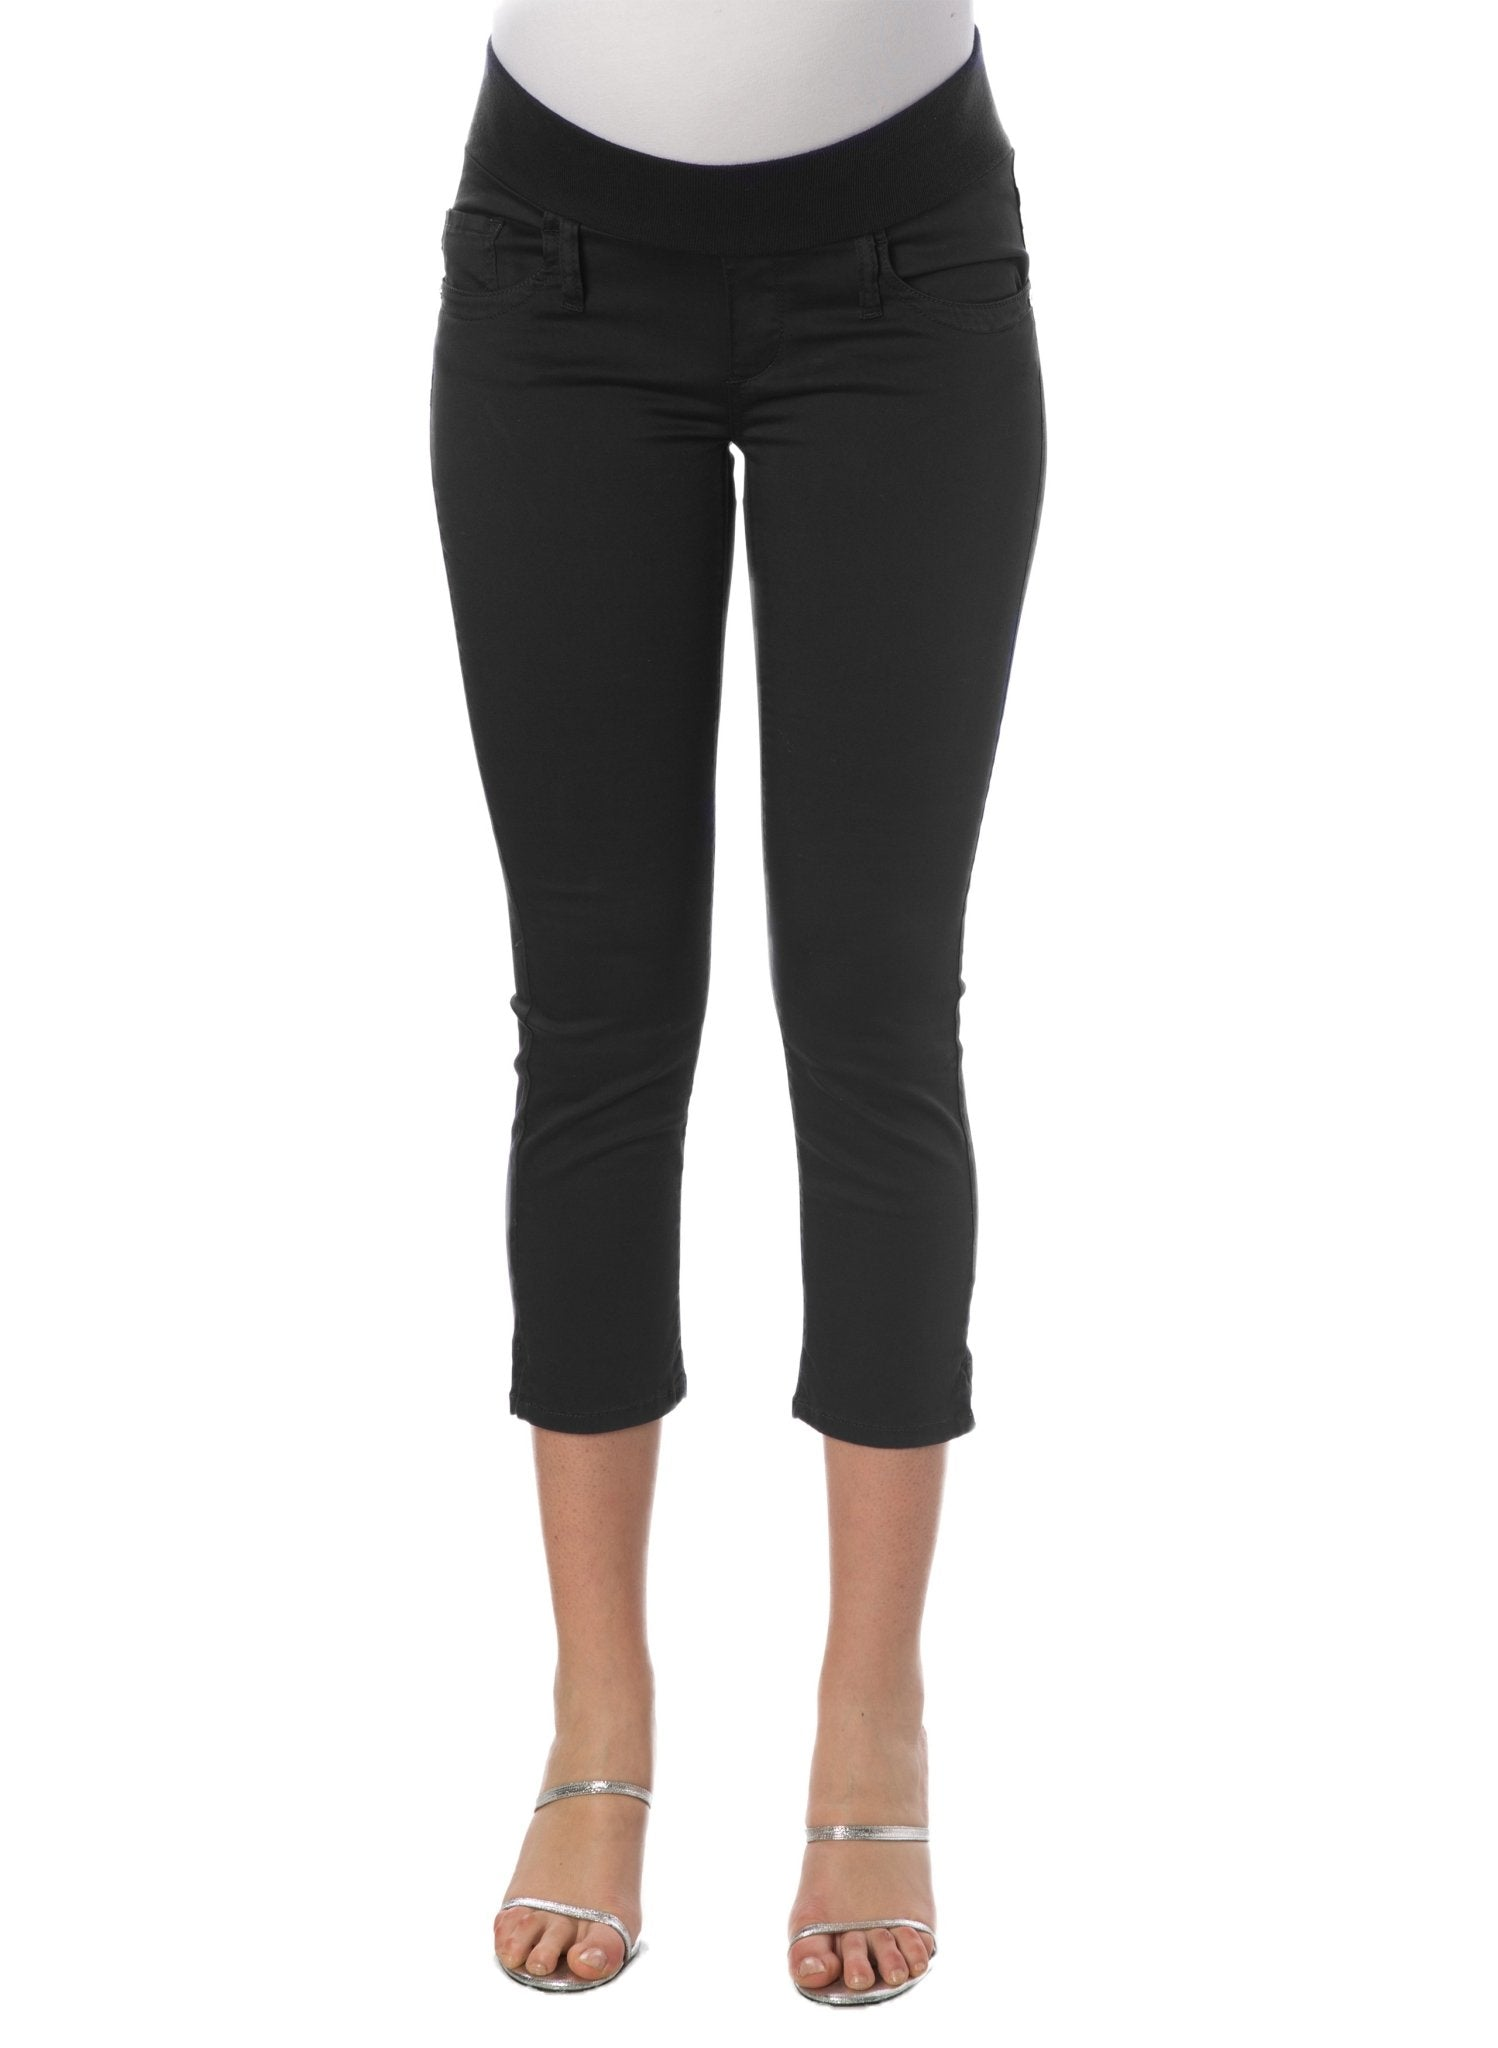 Capri Cotton Maternity Pants - Black - Mums and Bumps